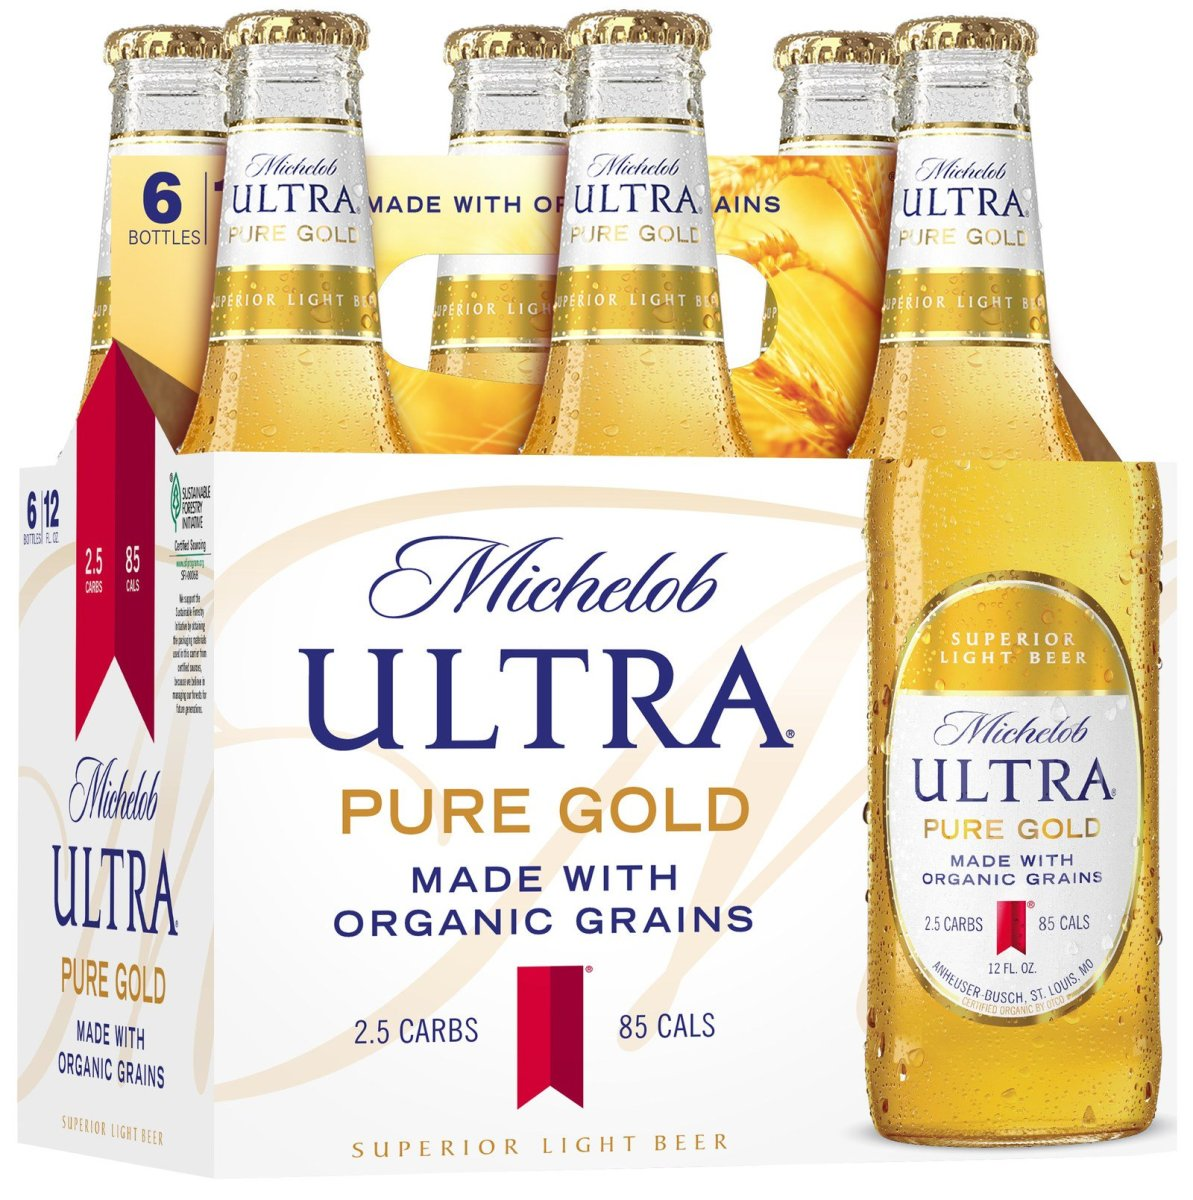 Anheuser-Busch Launches Organic Beer With Michelob Ultra Pure Gold